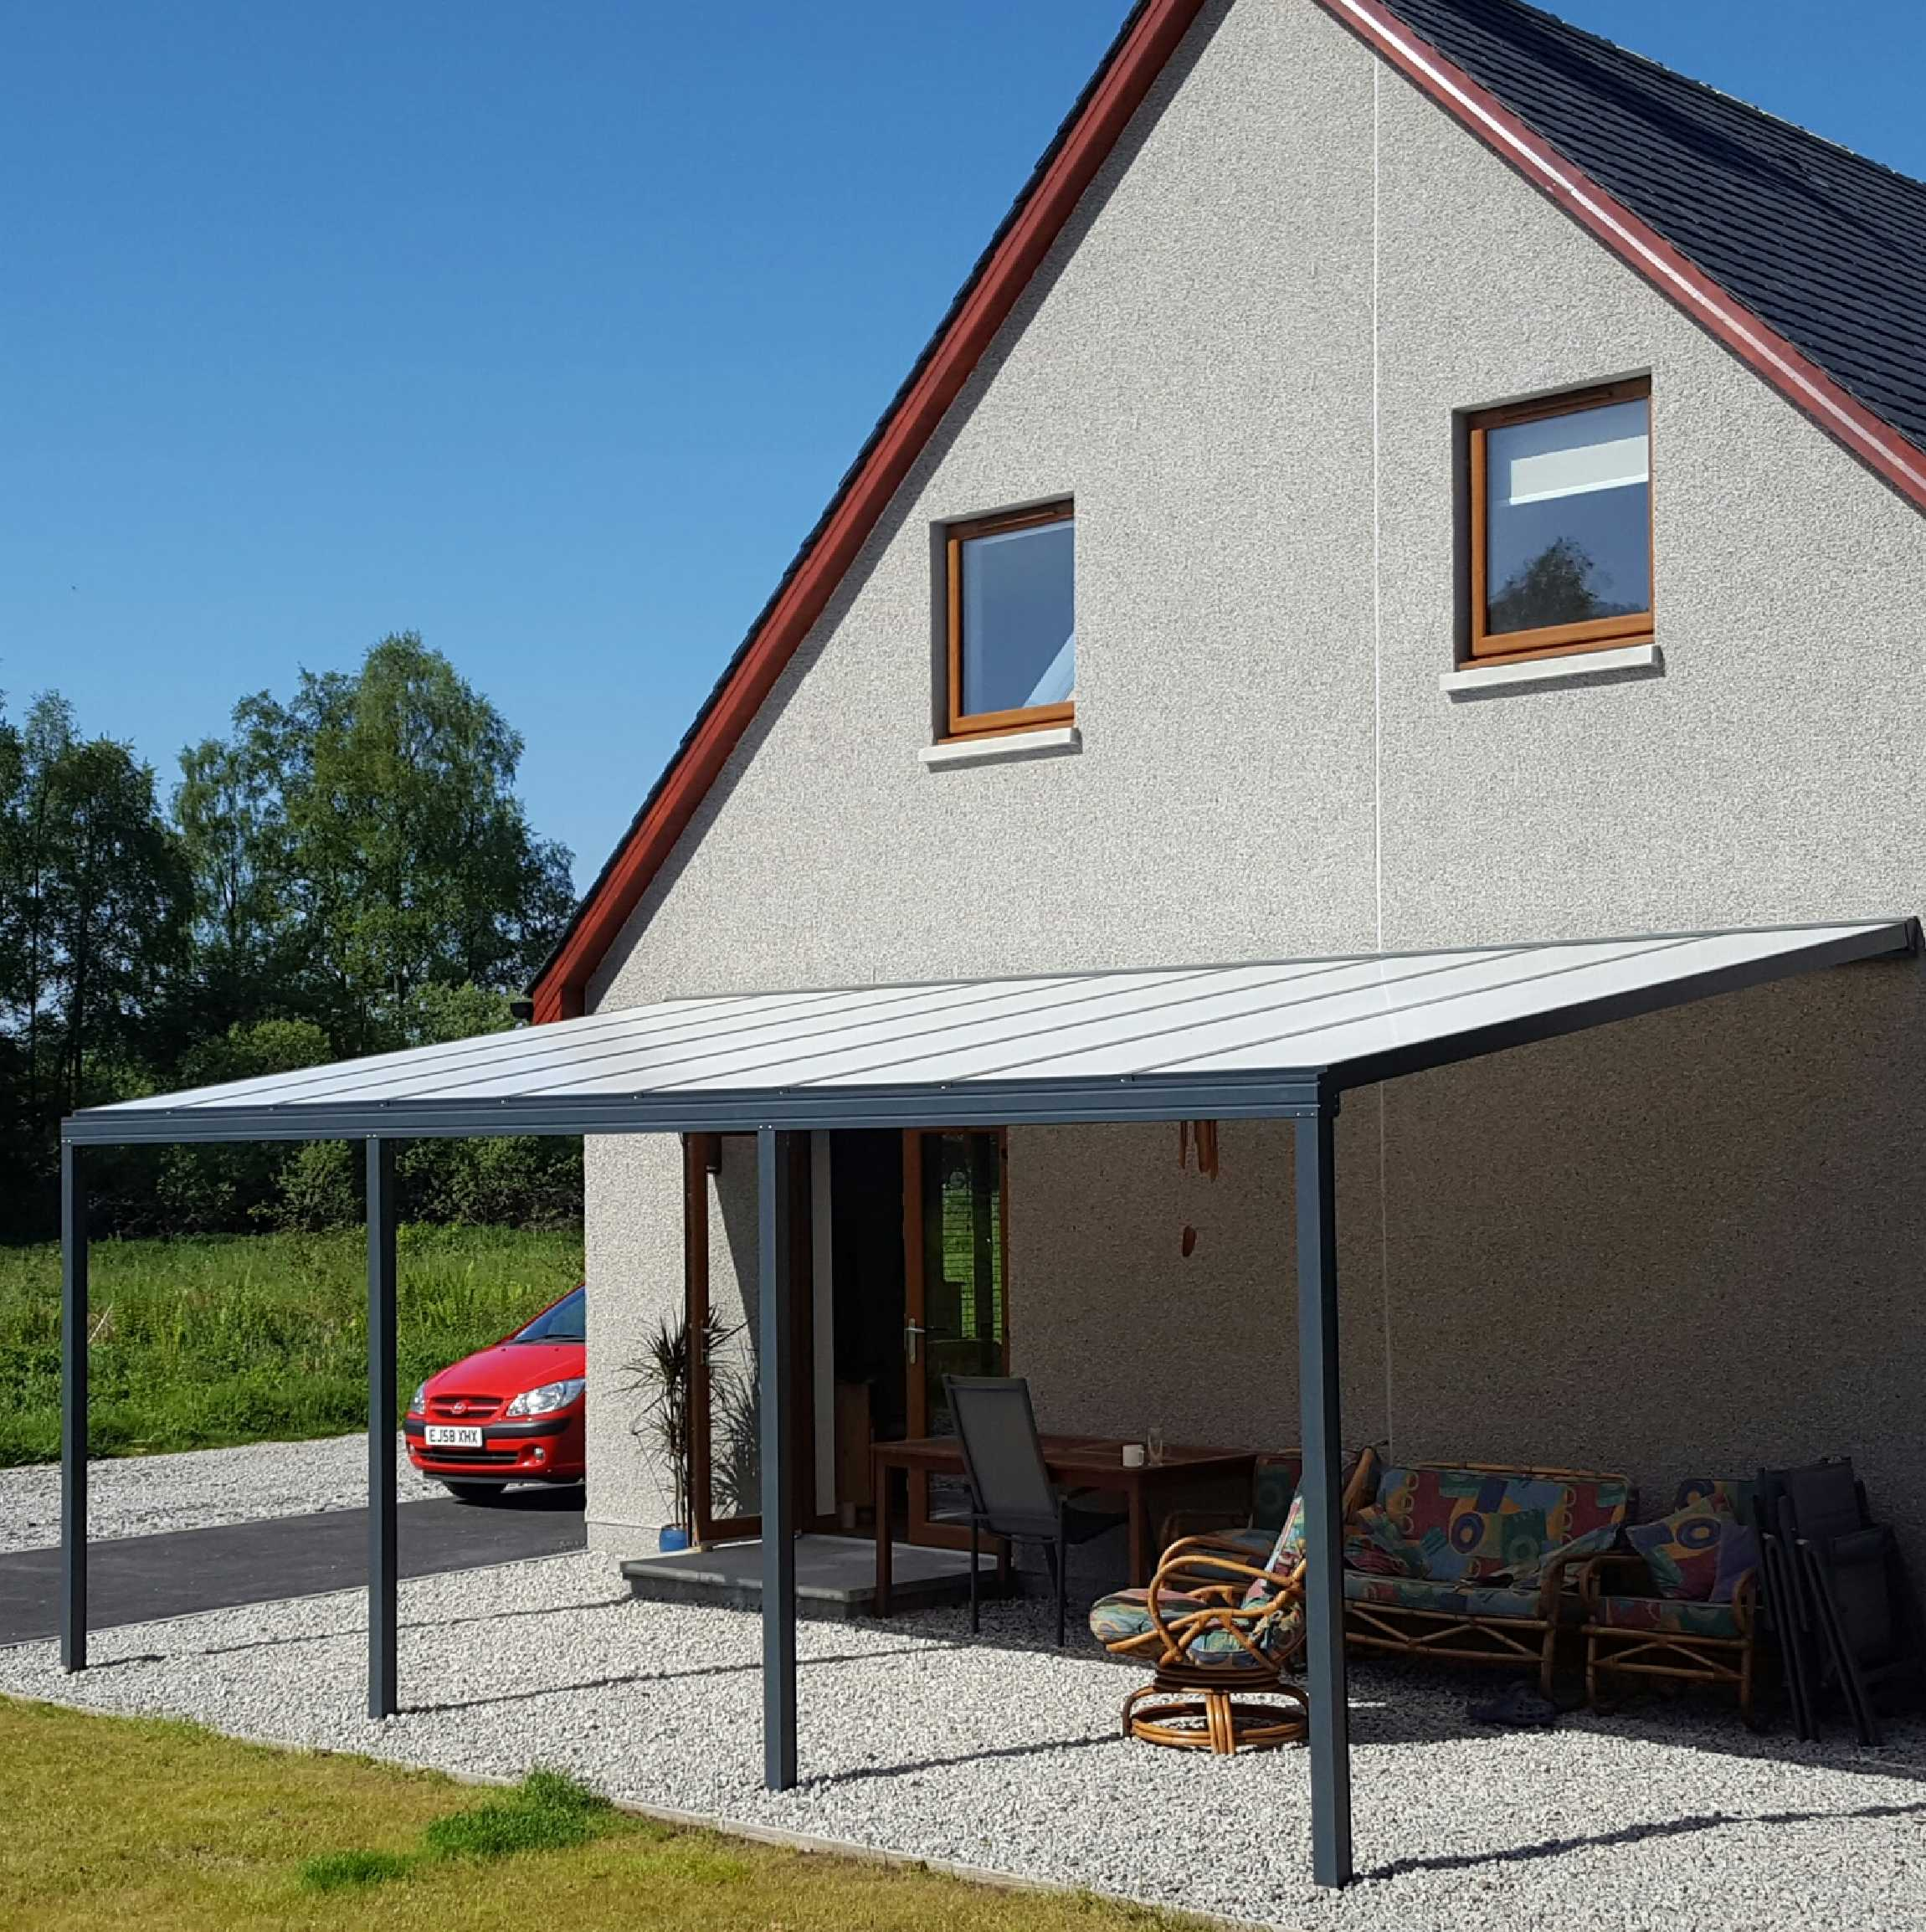 Great selection of Omega Smart Lean-To Canopy, Anthracite Grey, 16mm Polycarbonate Glazing - 7.4m (W) x 2.5m (P), (4) Supporting Posts